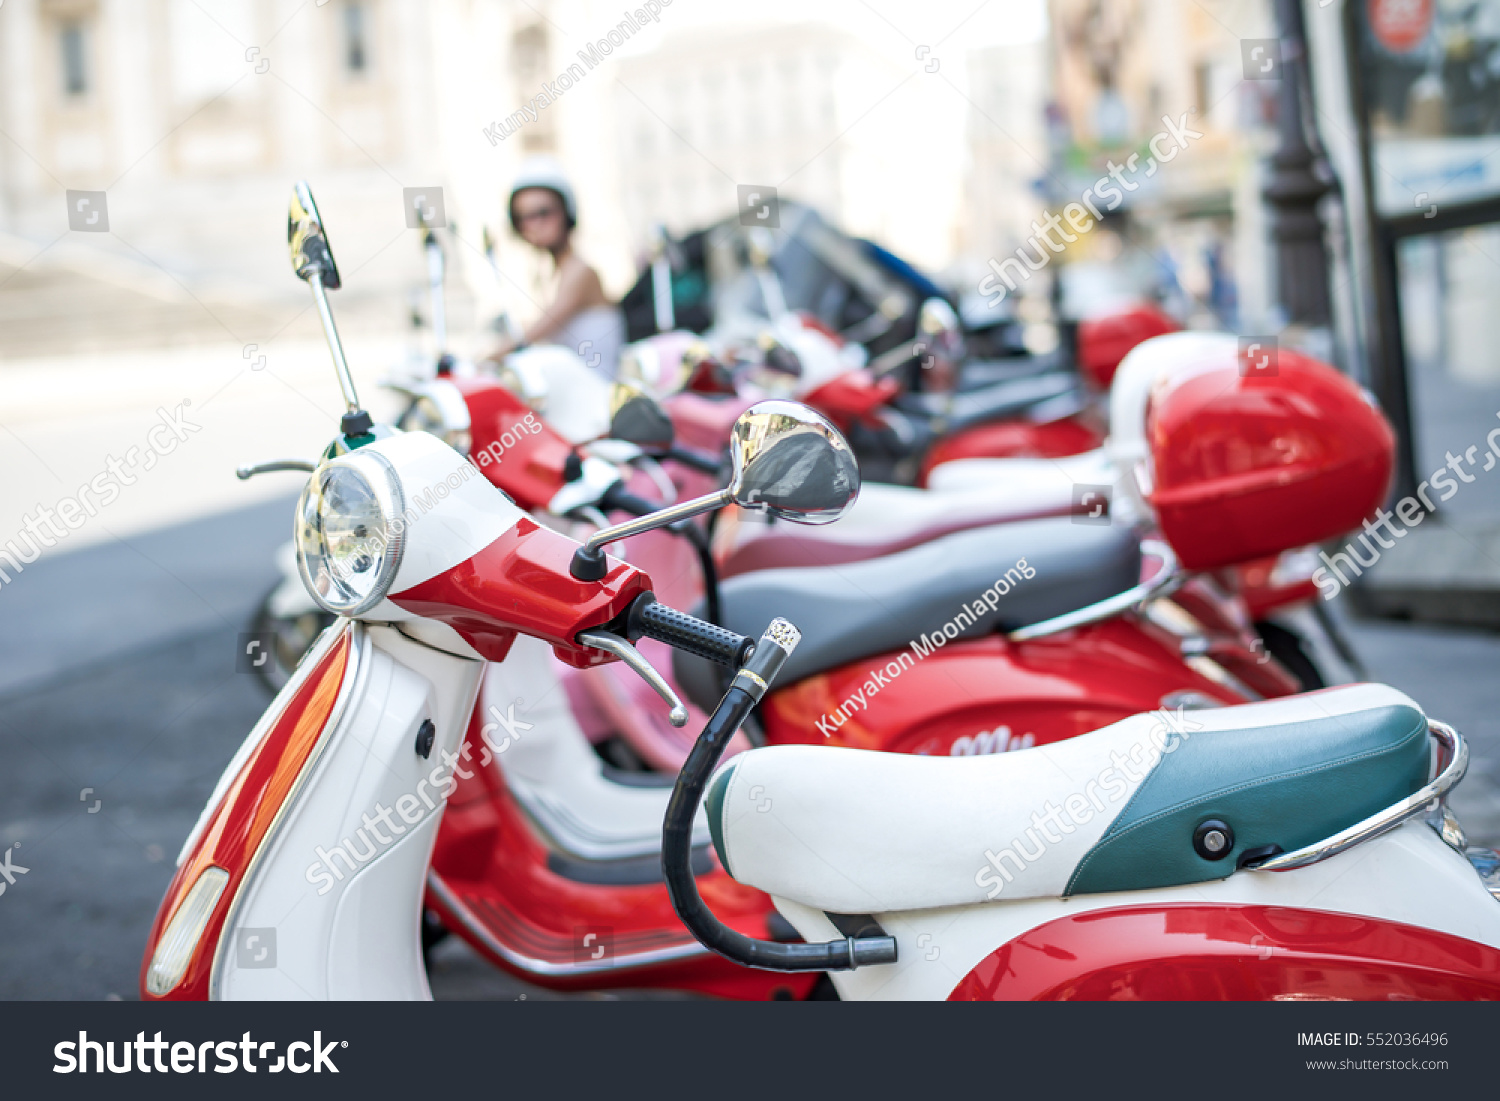 Row Red Vespas focus on the first Vespa